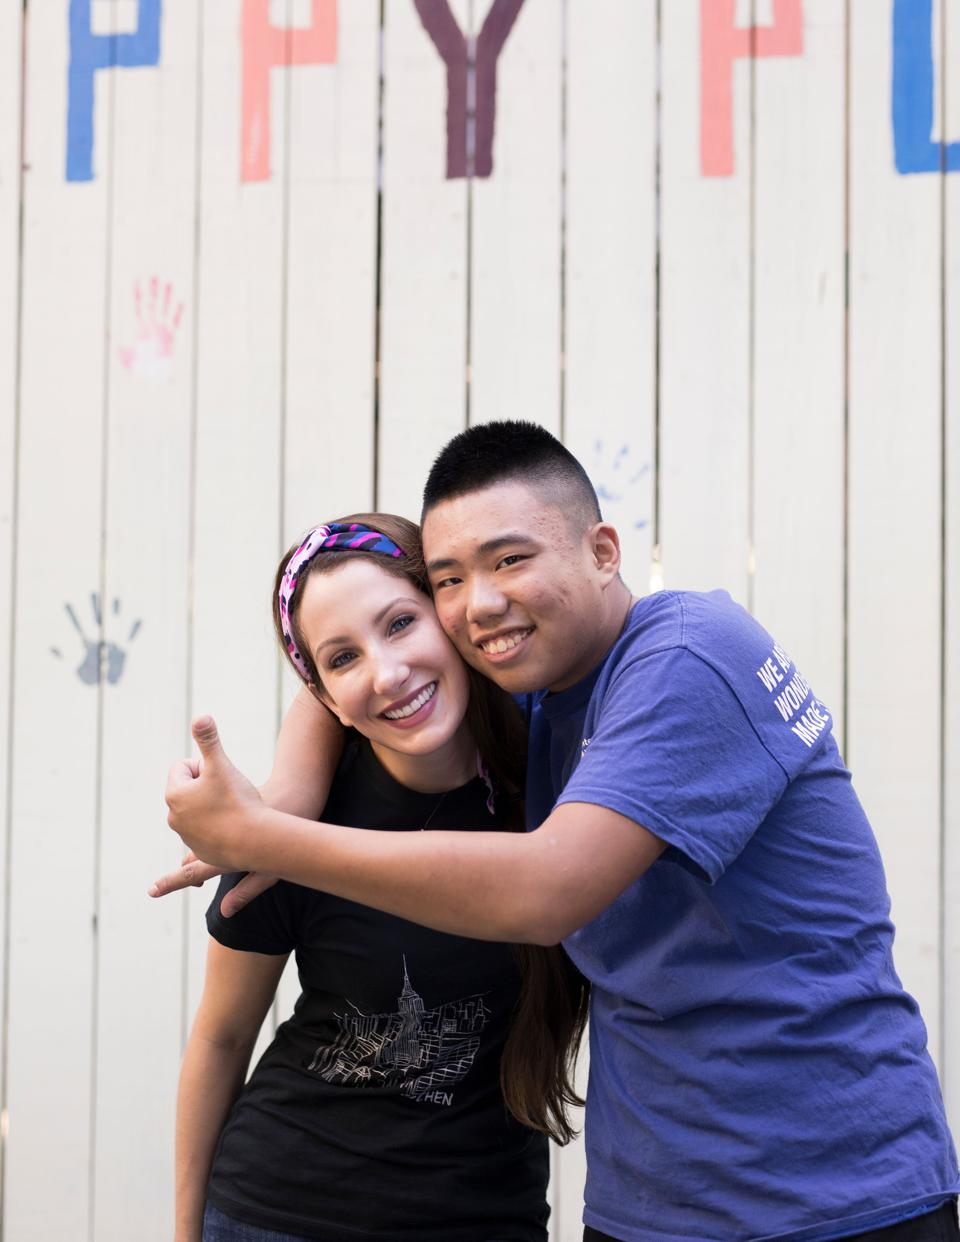 Jovana Mullins and Allen Li standing together for a picture.